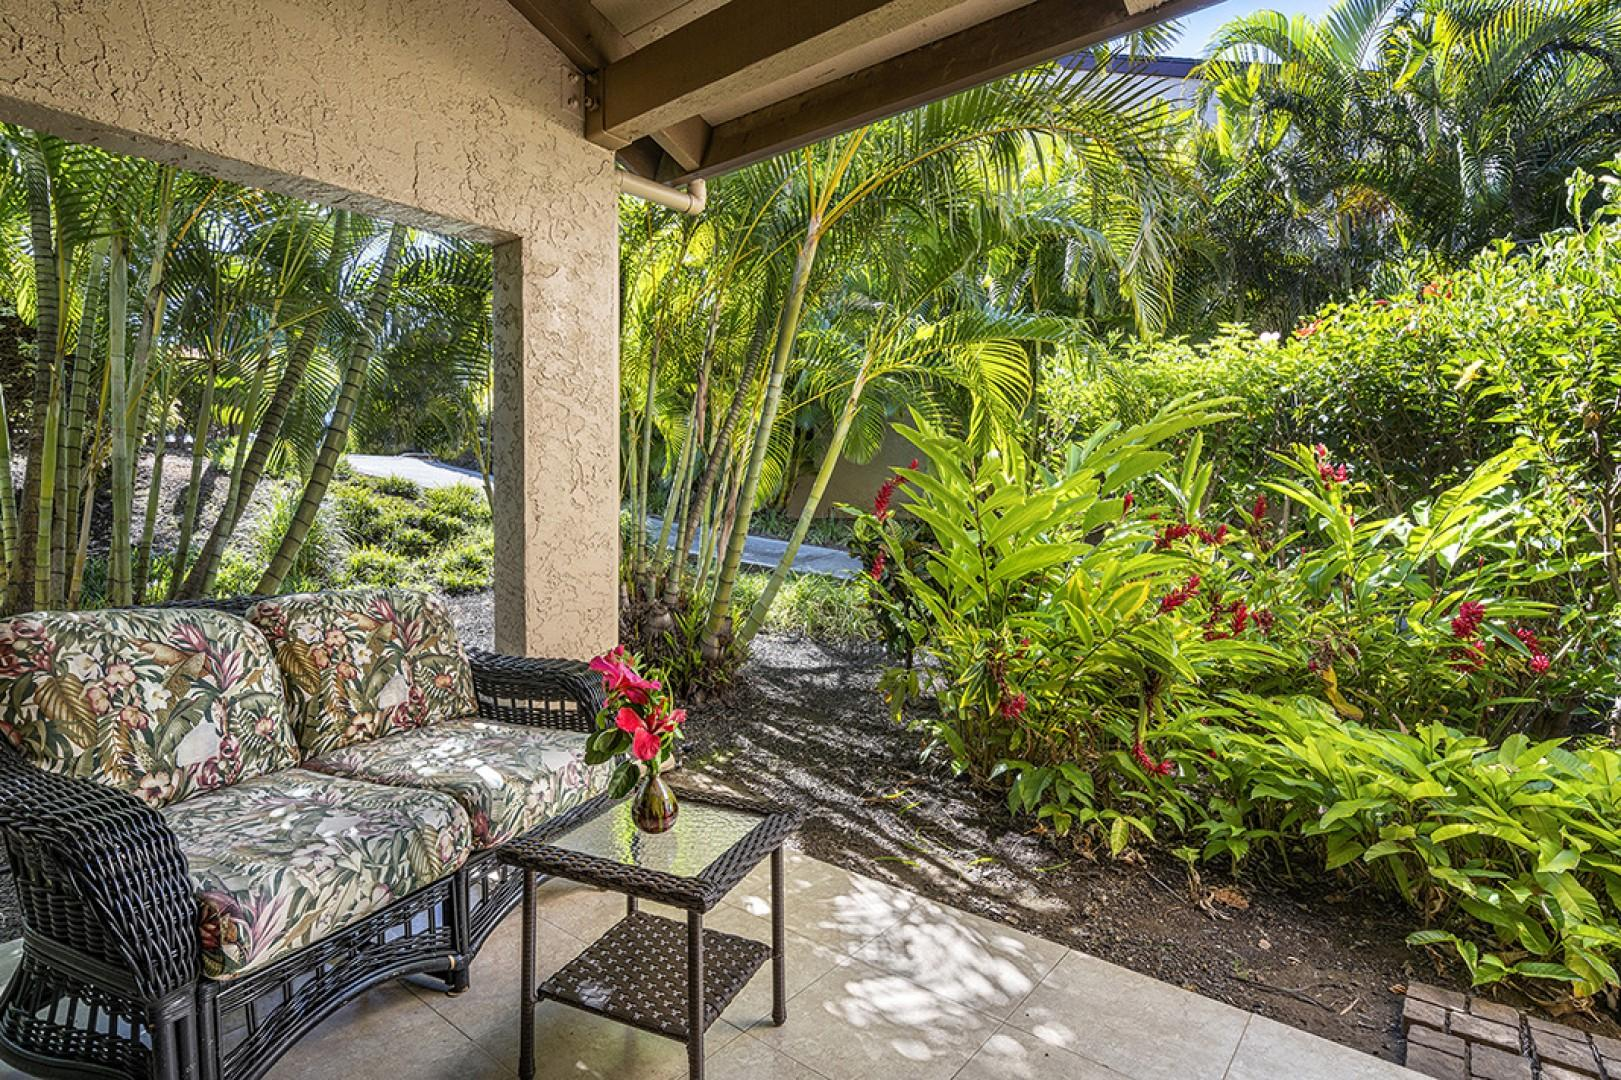 Enjoy coffee or tea with a dash of nature in this Tropical setting